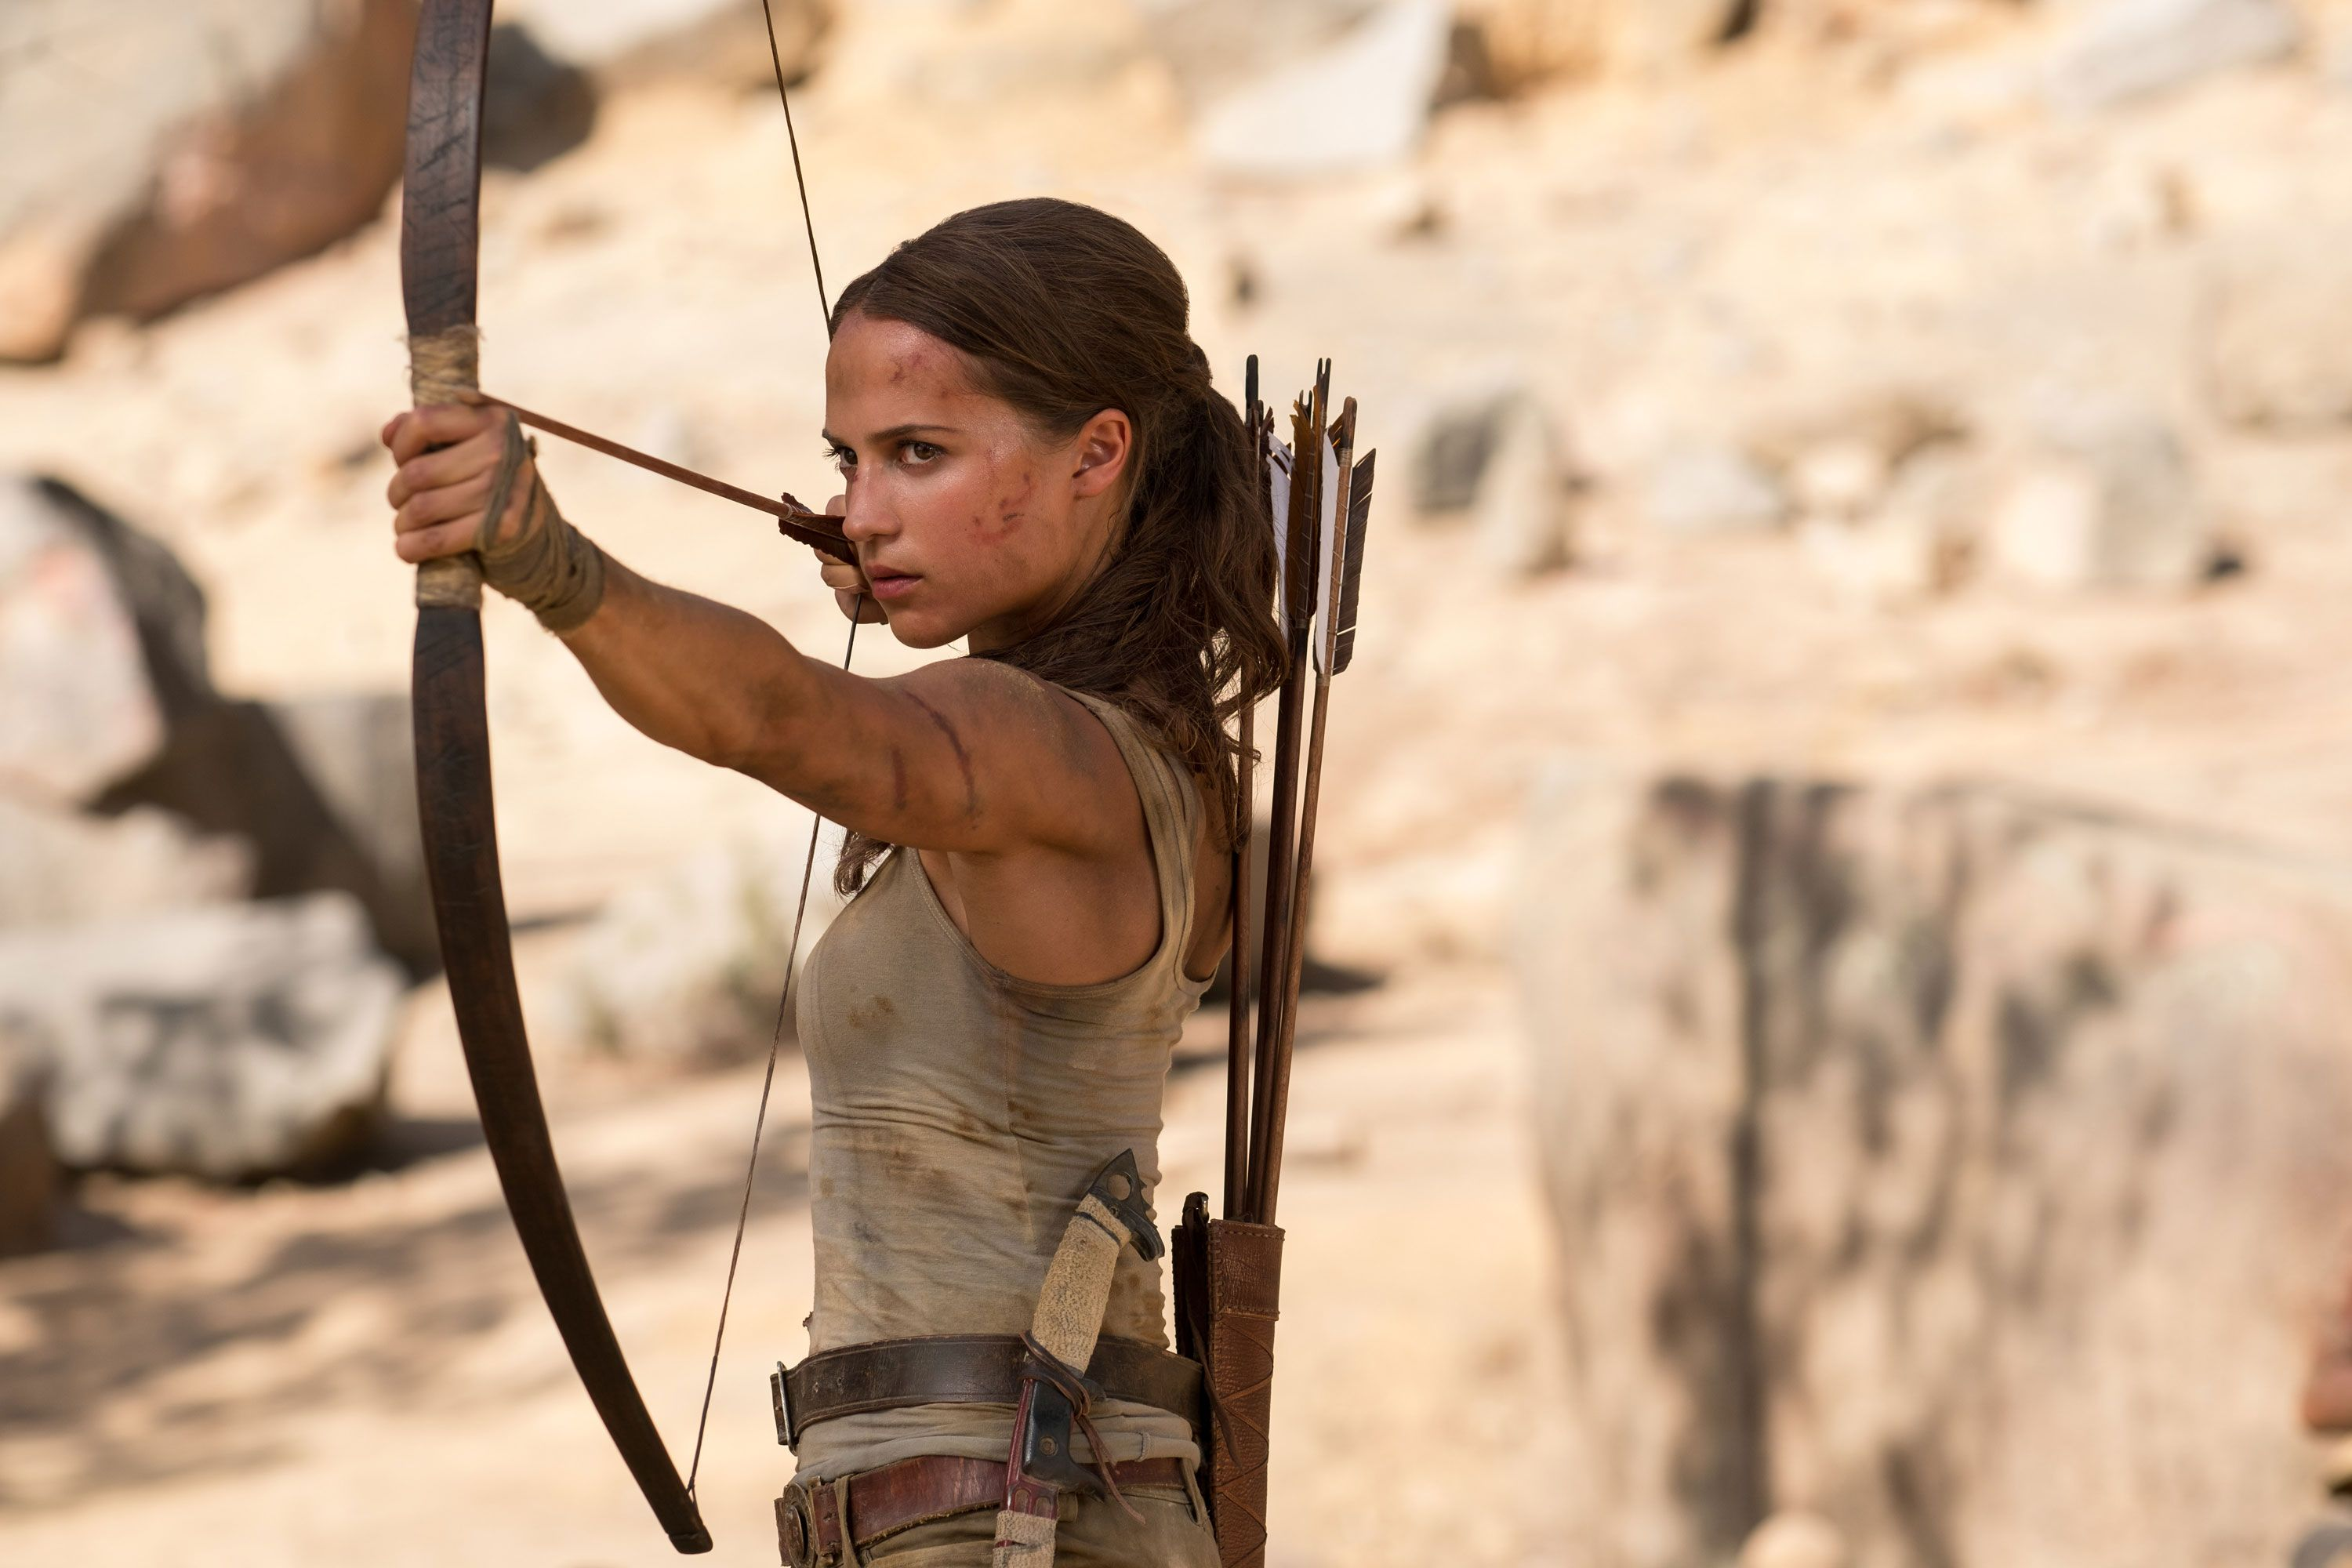 Tomb Raider 2 - Lara Croft remake 2021, release date, cast, plot